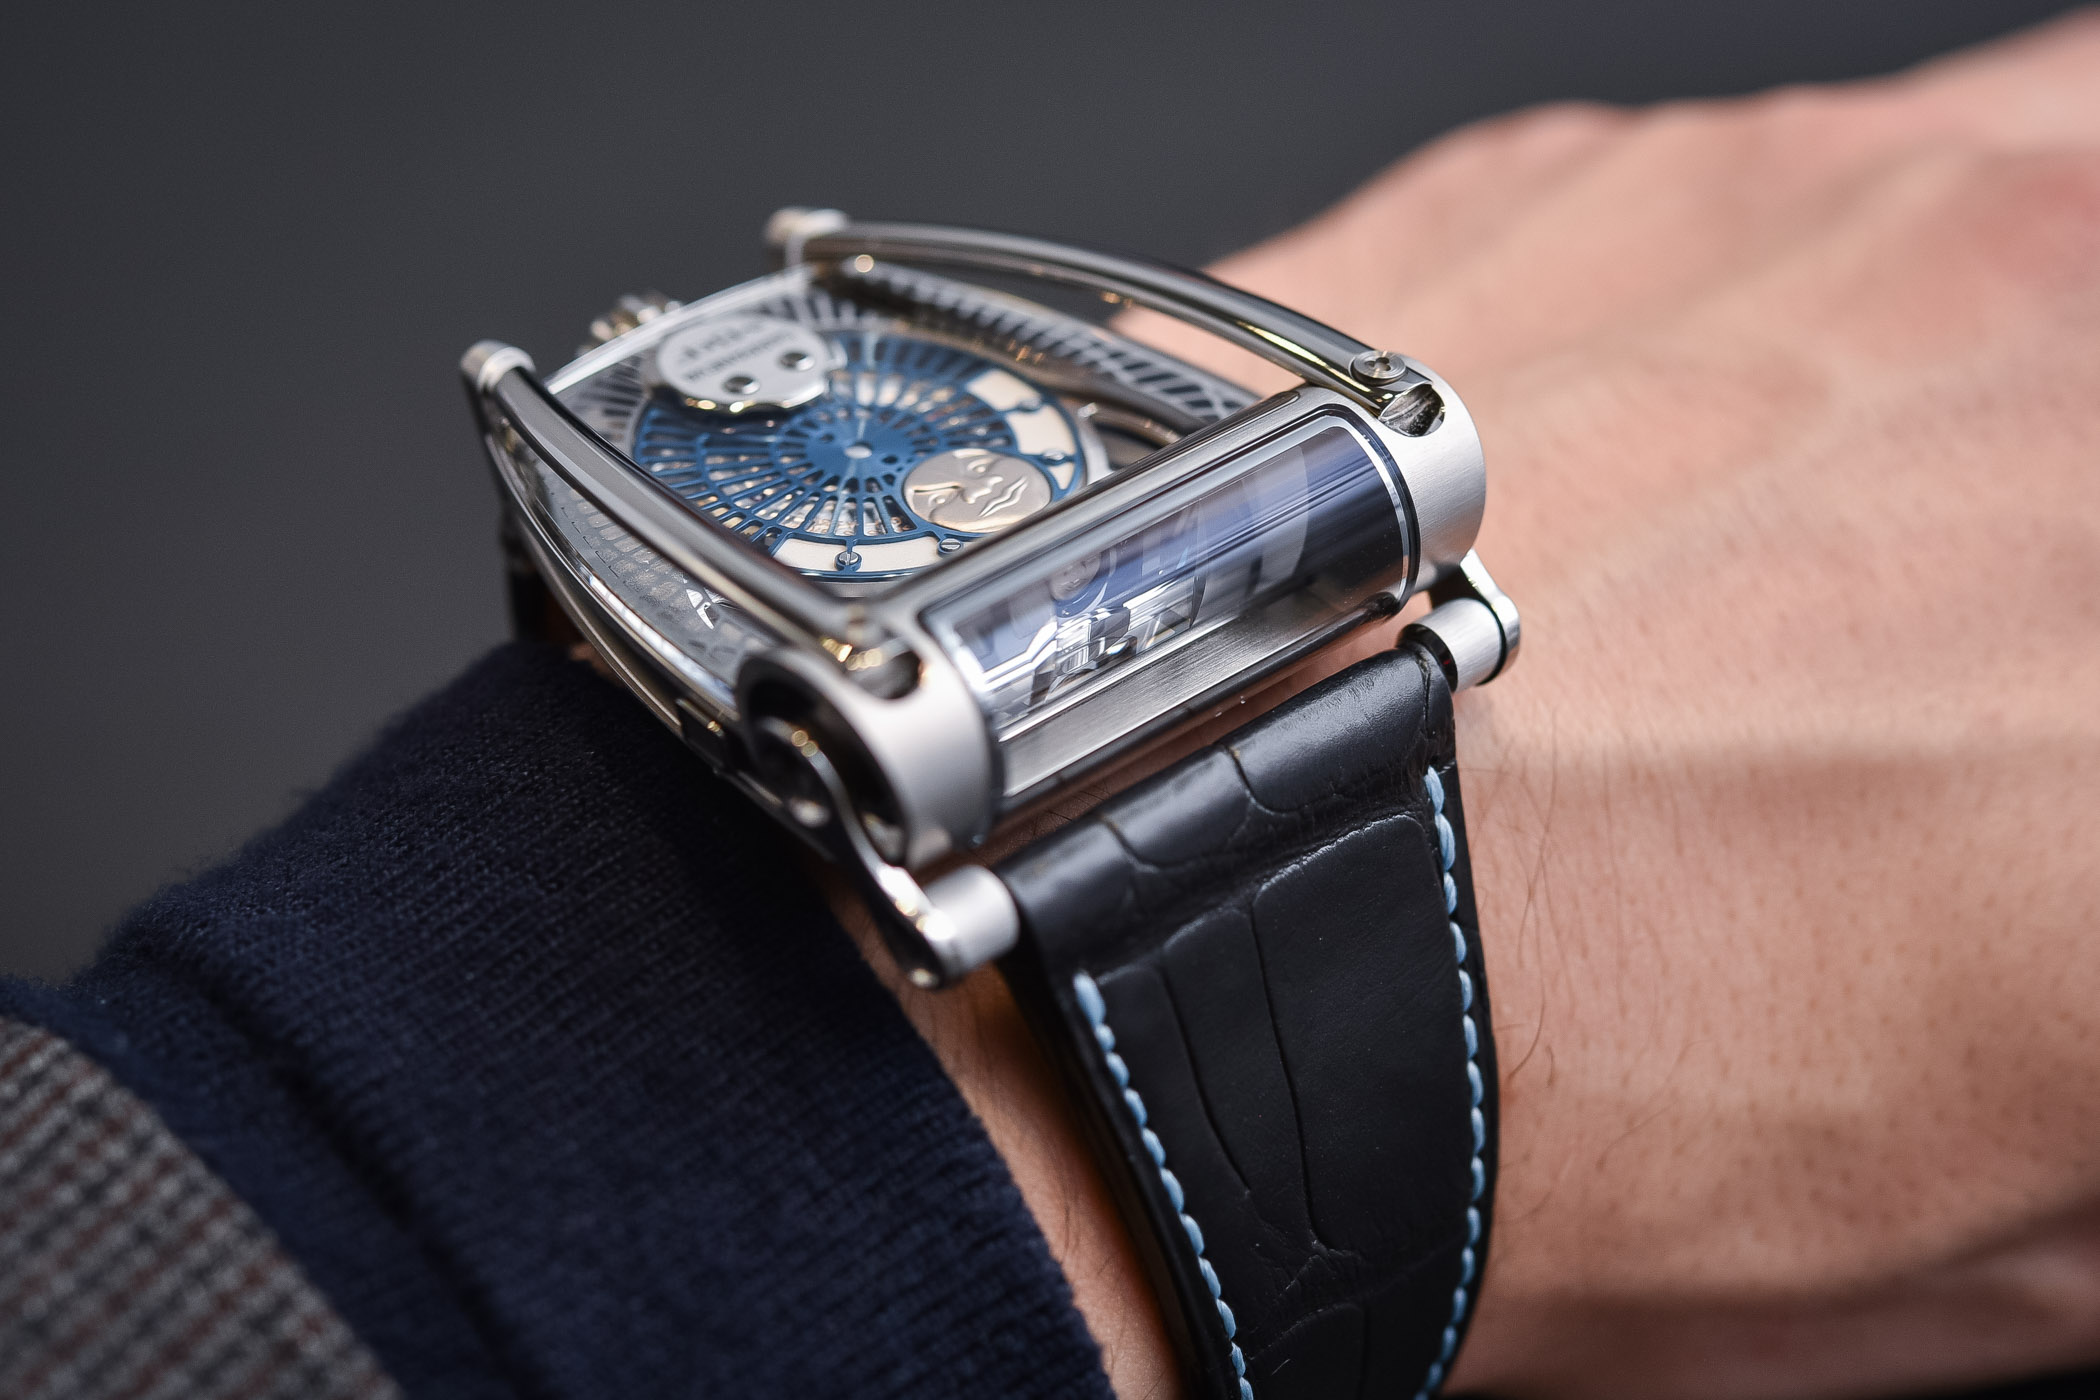 MB&F MoonMachine 2 Sarpaneva HM8 - SIHH 2018 review